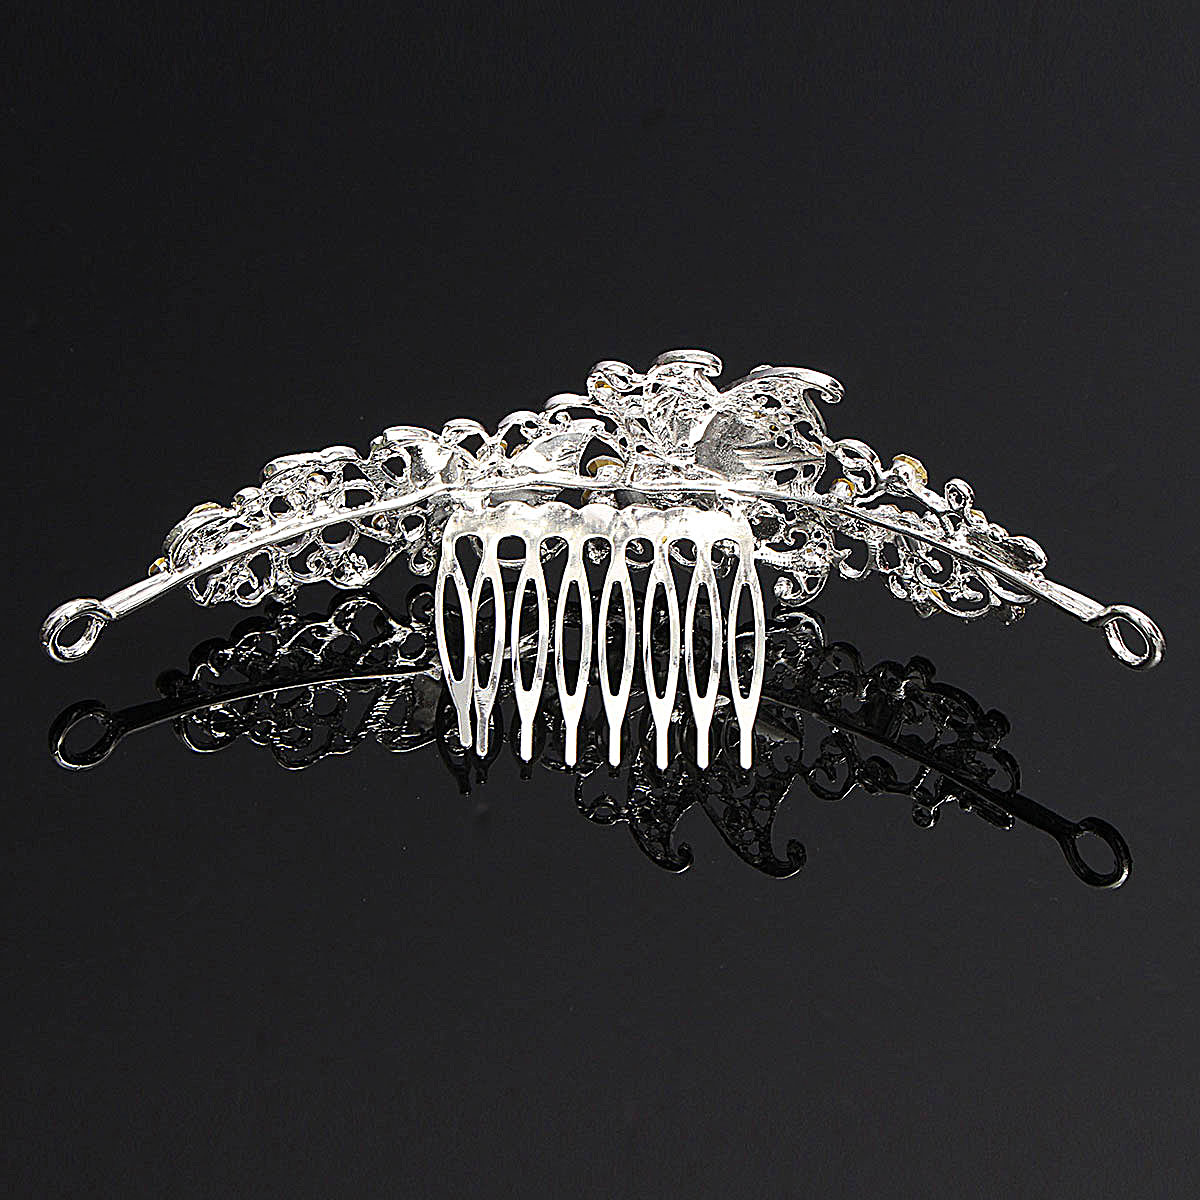 Bridal Butterfly Rhinestone Tiara Wedding Party Headpieces Shiny Crystal Princess Crown With Comb